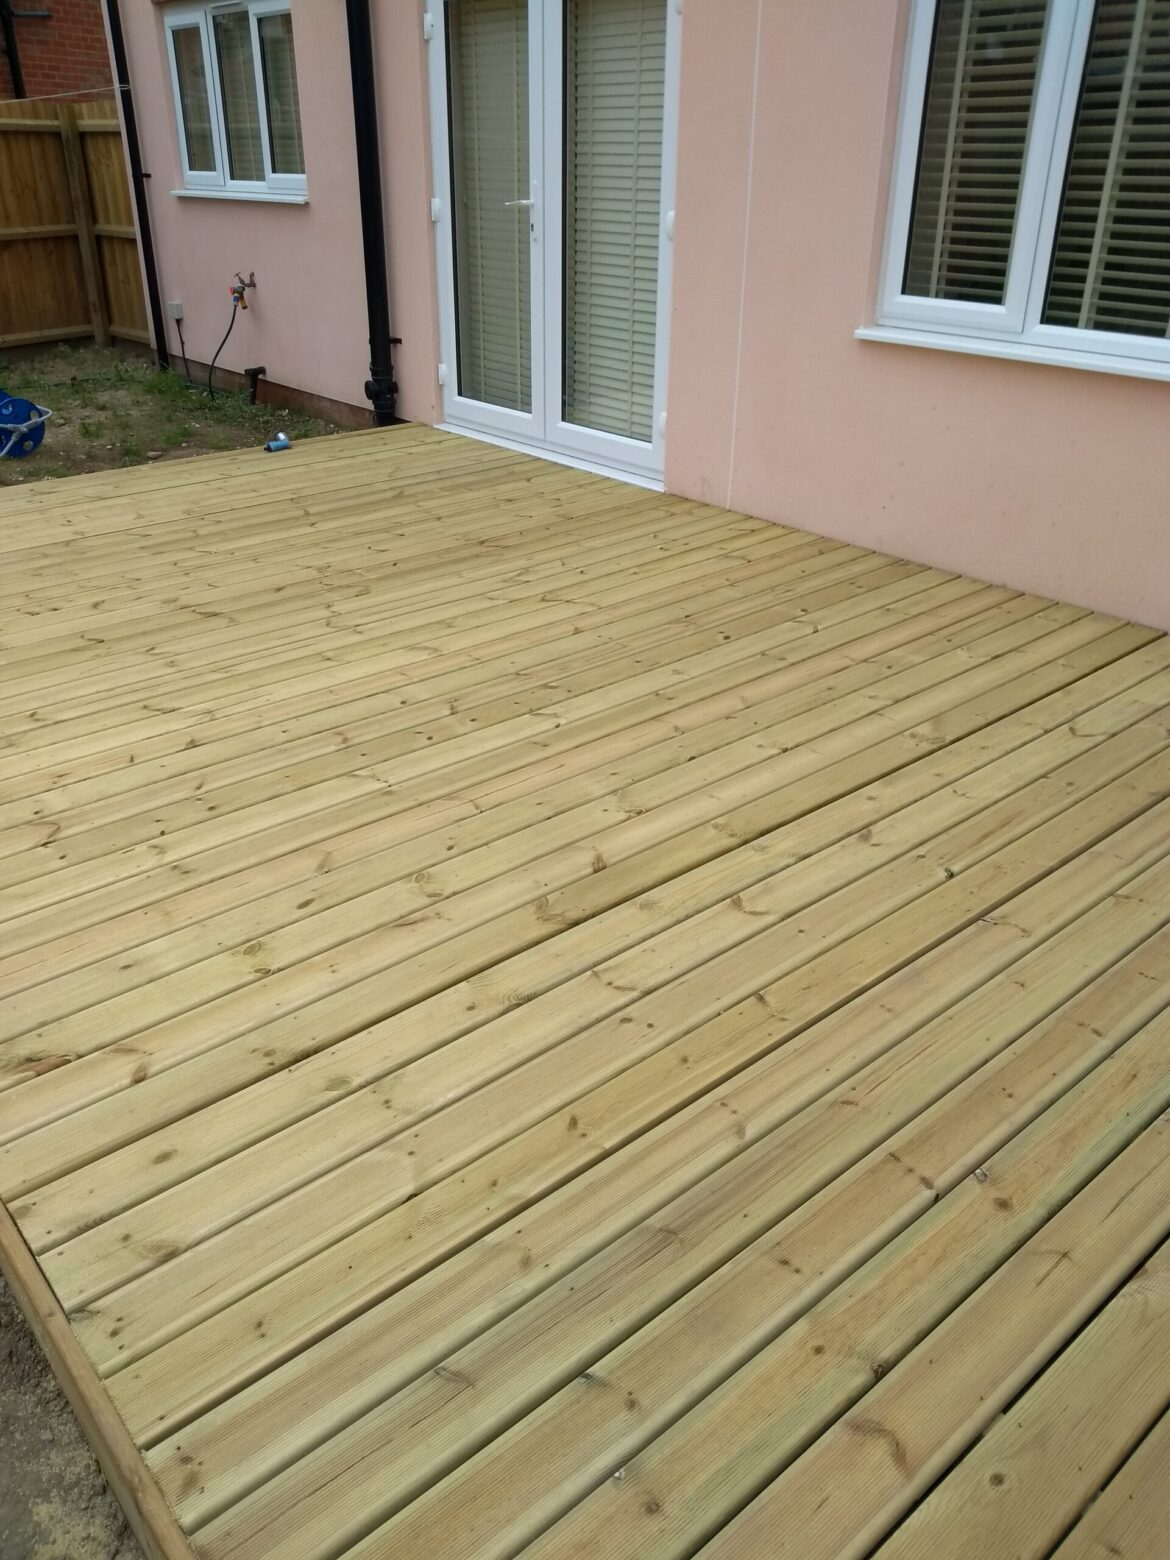 Timber decking on new build Norwich